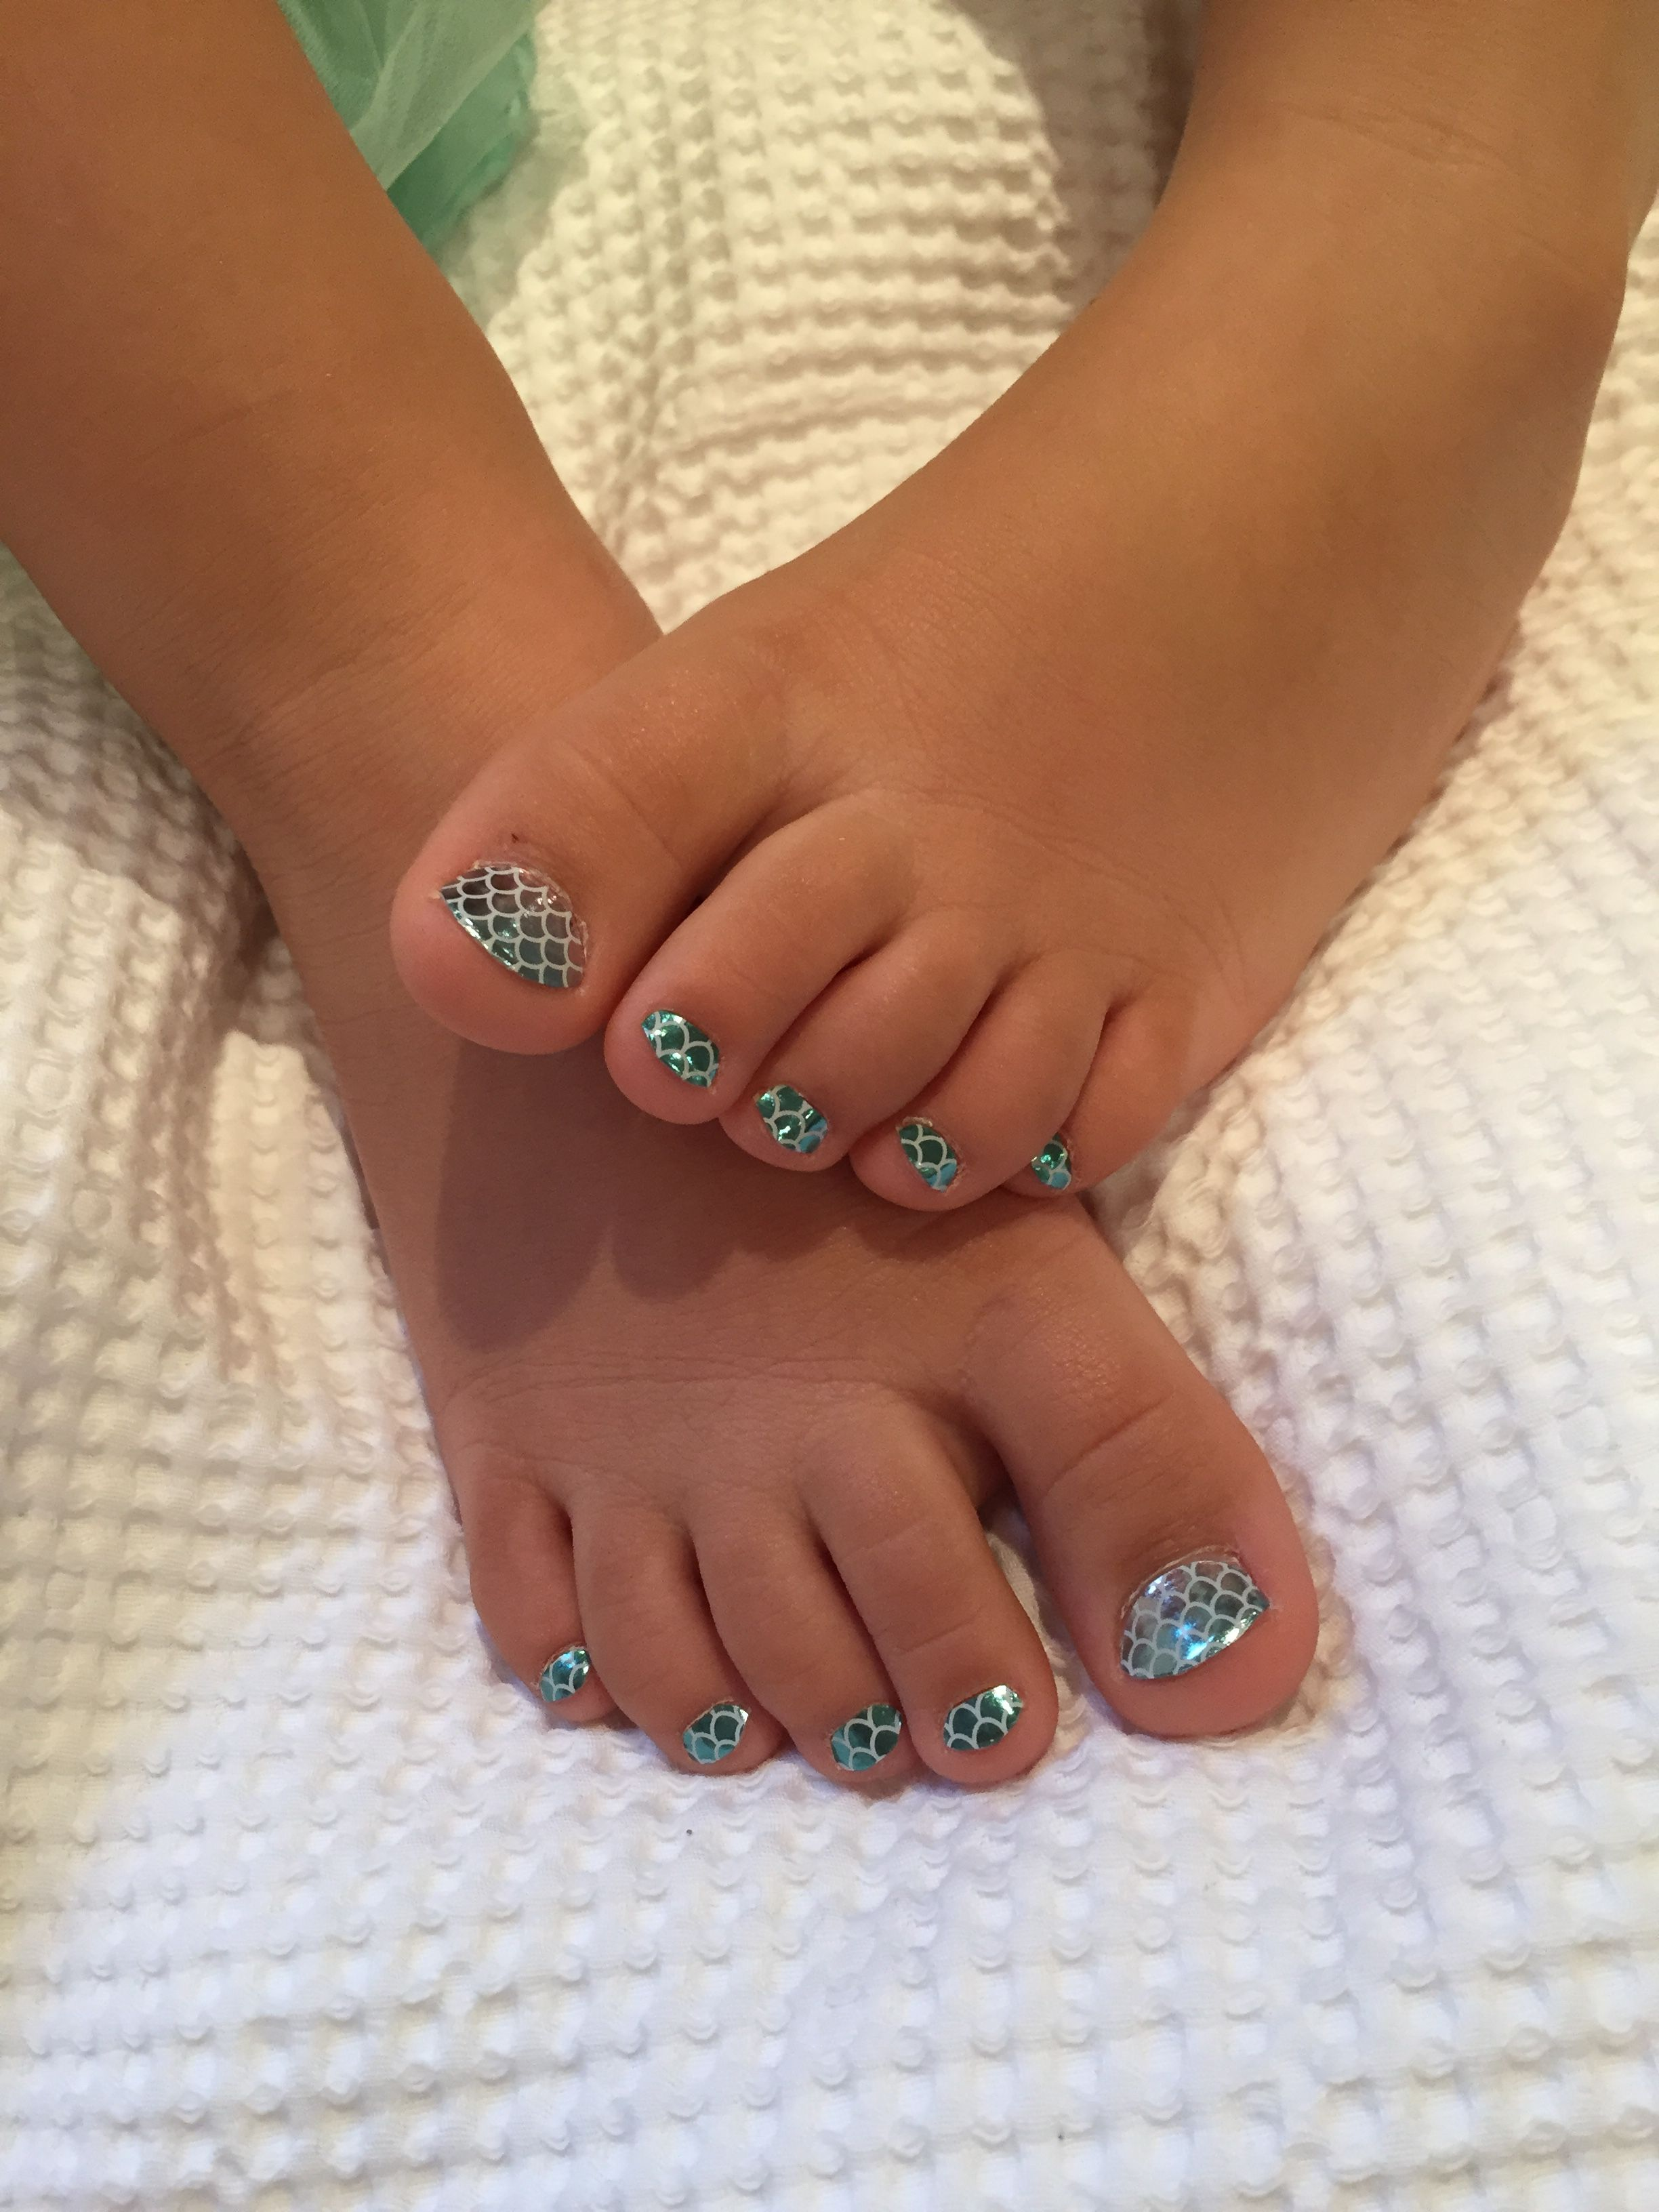 Jamberry Pedicures With My Girls - Mermaid Tales